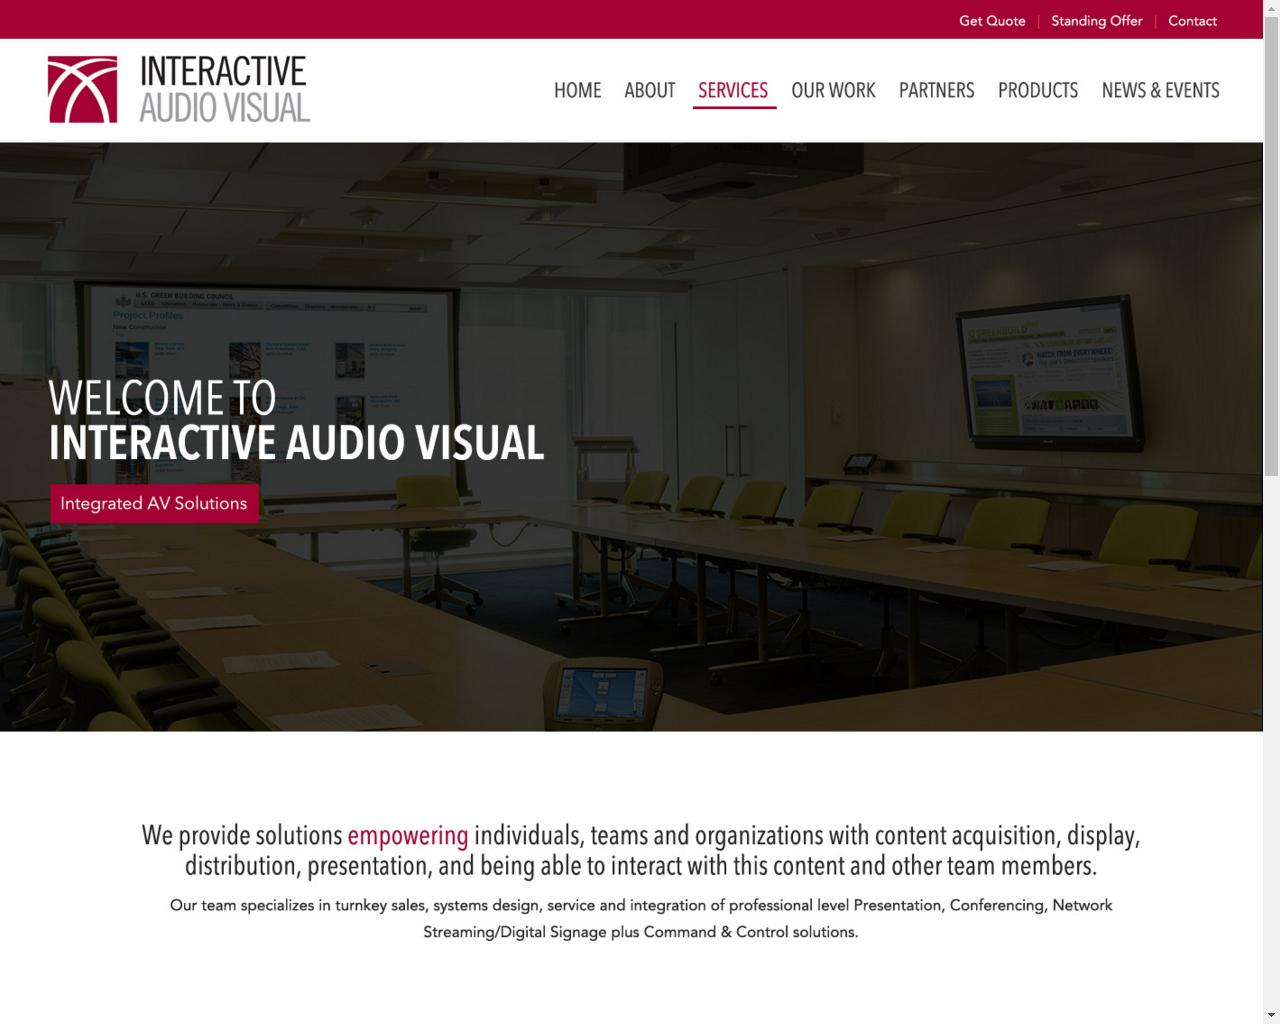 Interactive Audio Visual